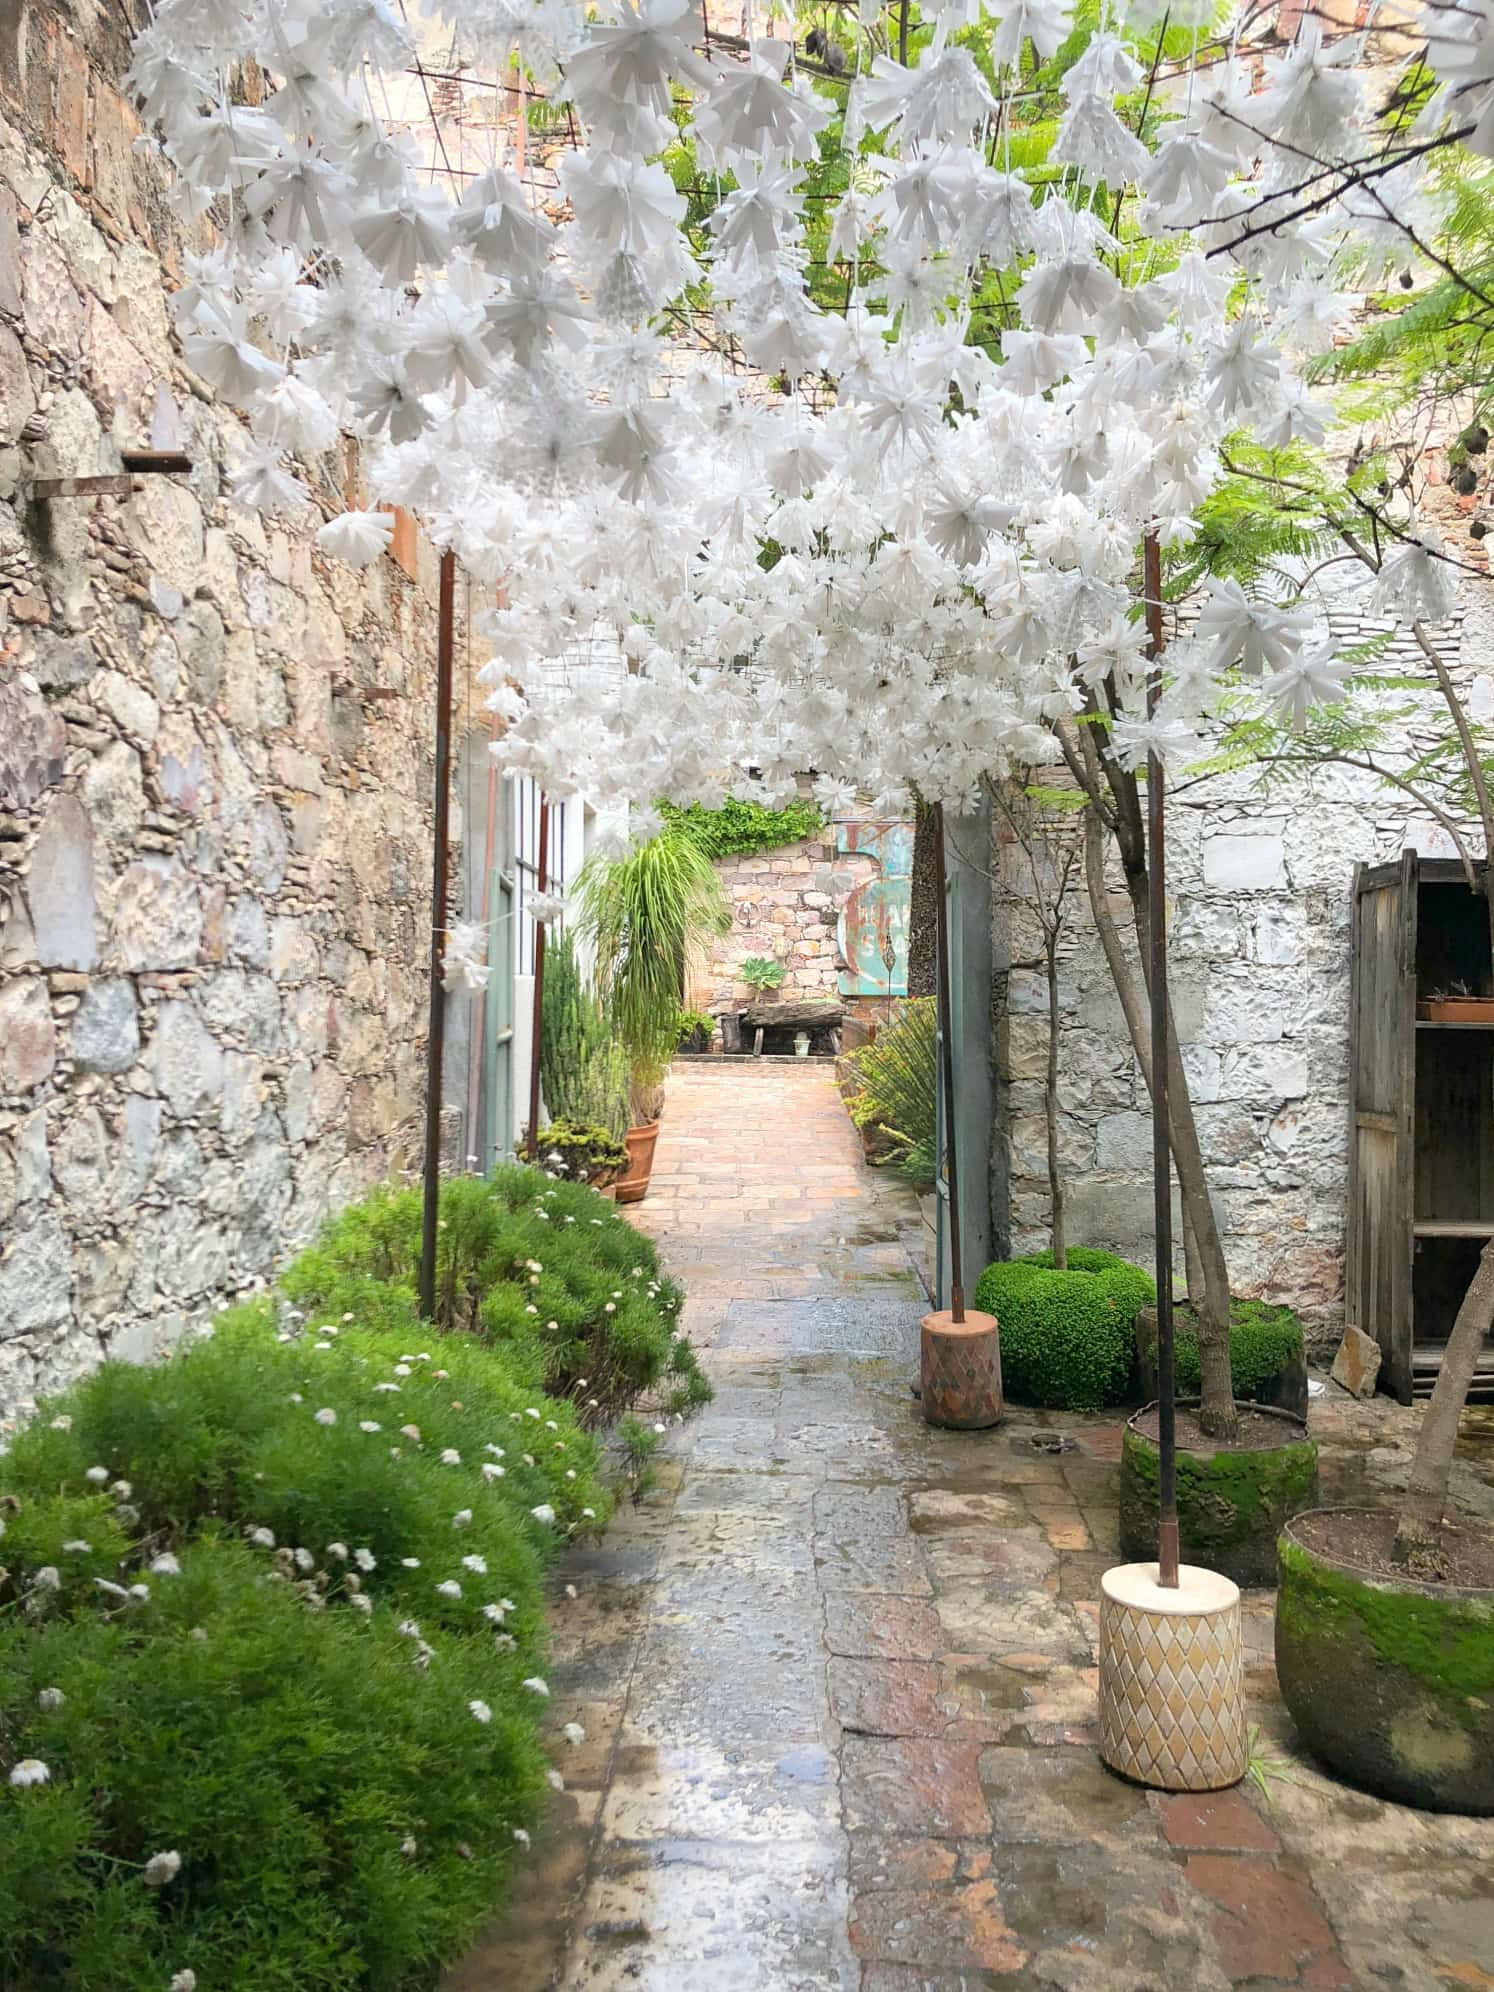 Fabrica la Aurora is a beautiful place to wander in San Miguel de Allende with kids